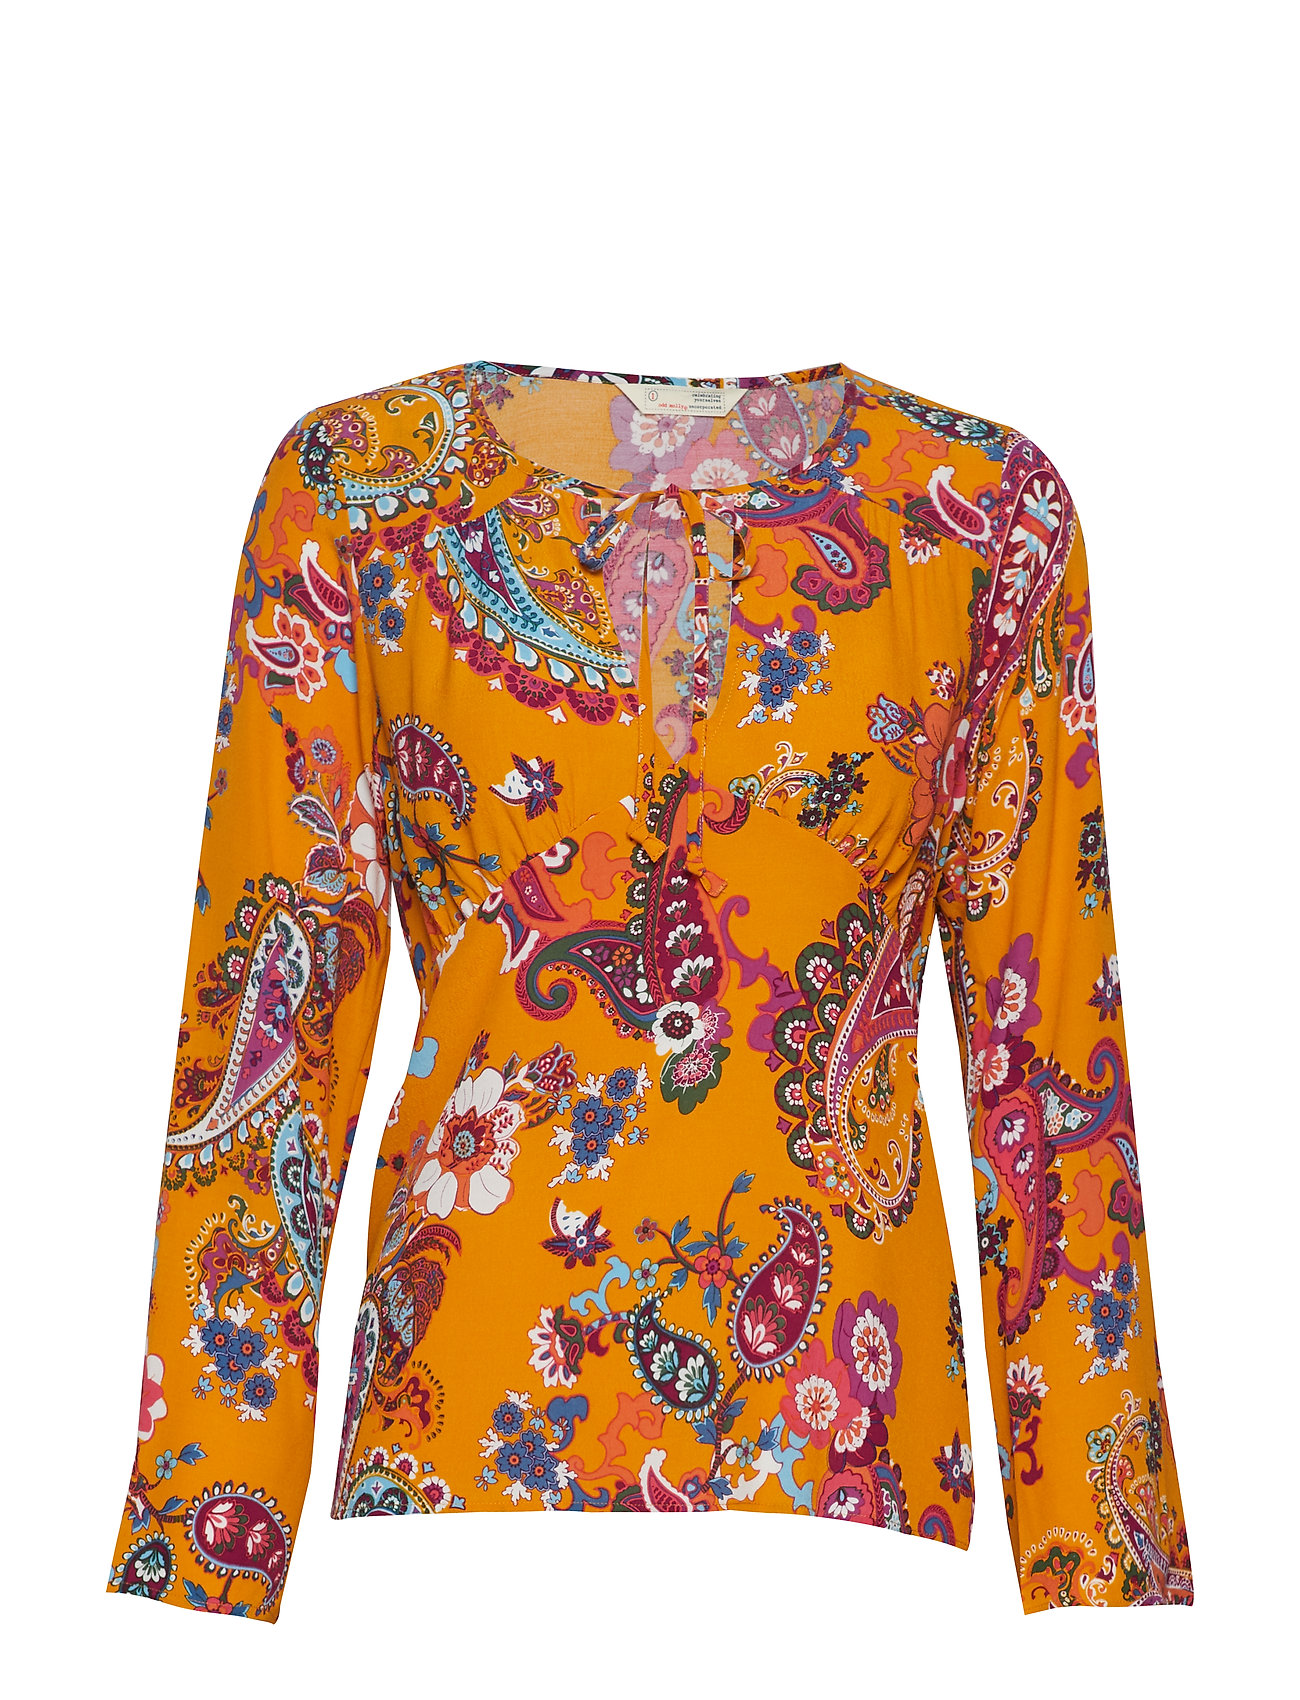 ODD MOLLY knock-off blouse - GOLDEN HONEY